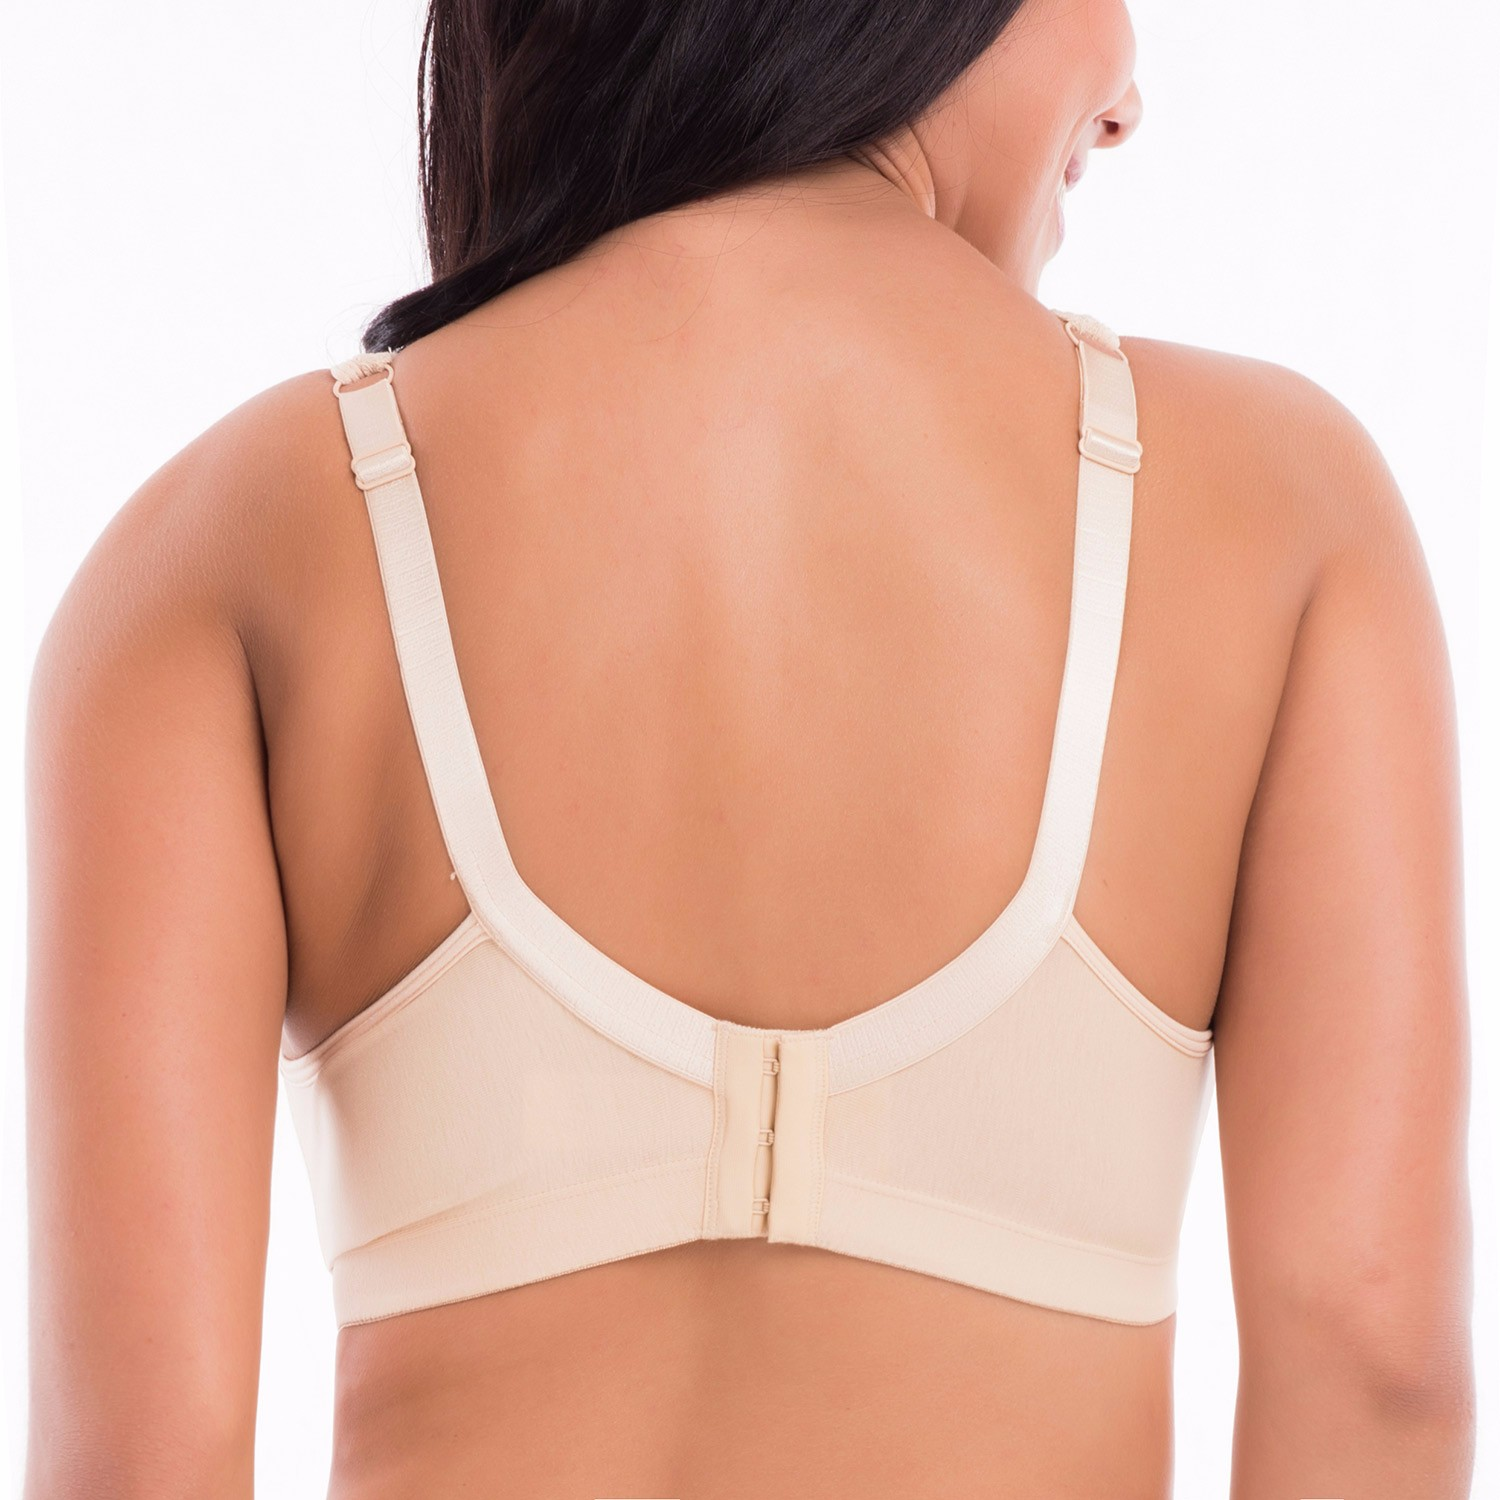 Women-039-s-Cotton-Full-Coverage-Wirefree-Non-padded-Lace-Trim-Plus-Size-Bra thumbnail 20